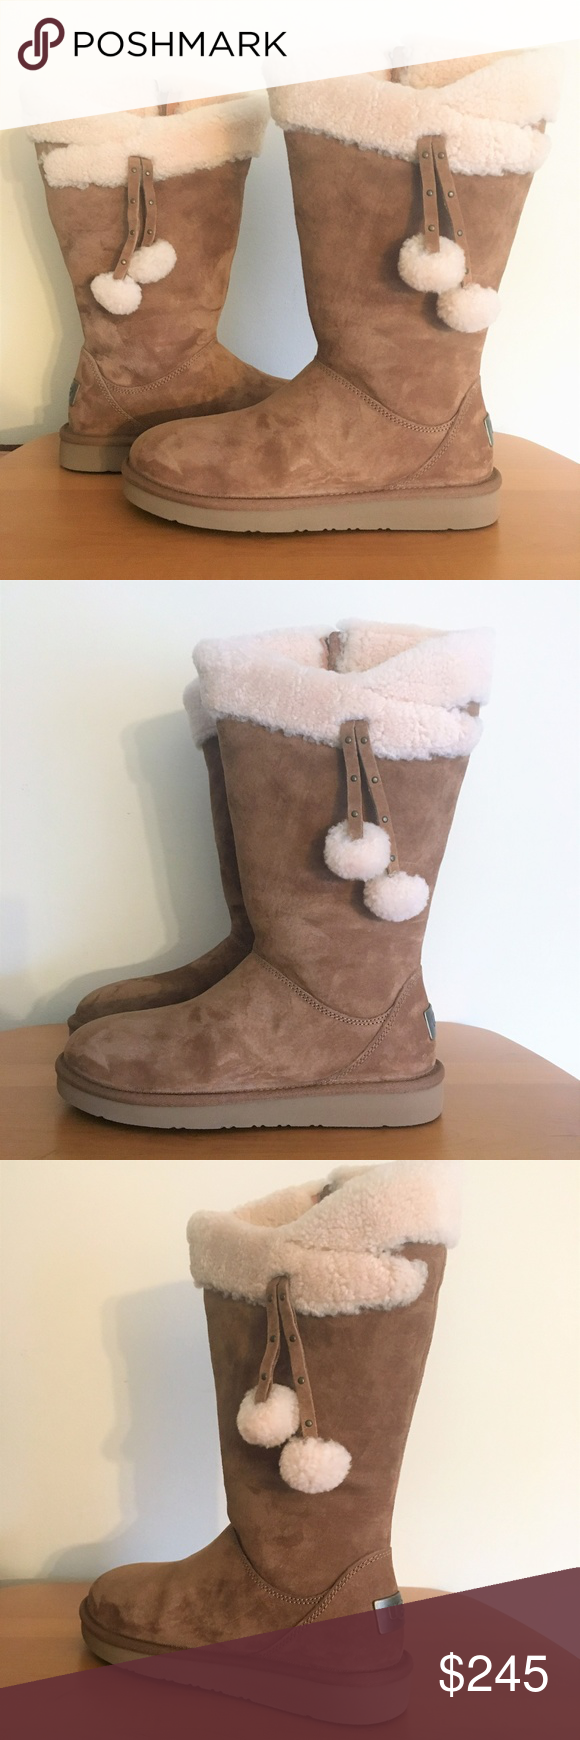 e9f62b7a9e4 New UGG Plumdale Cuff Pom Pom Suede Boots Chestnut Crafted from rich ...